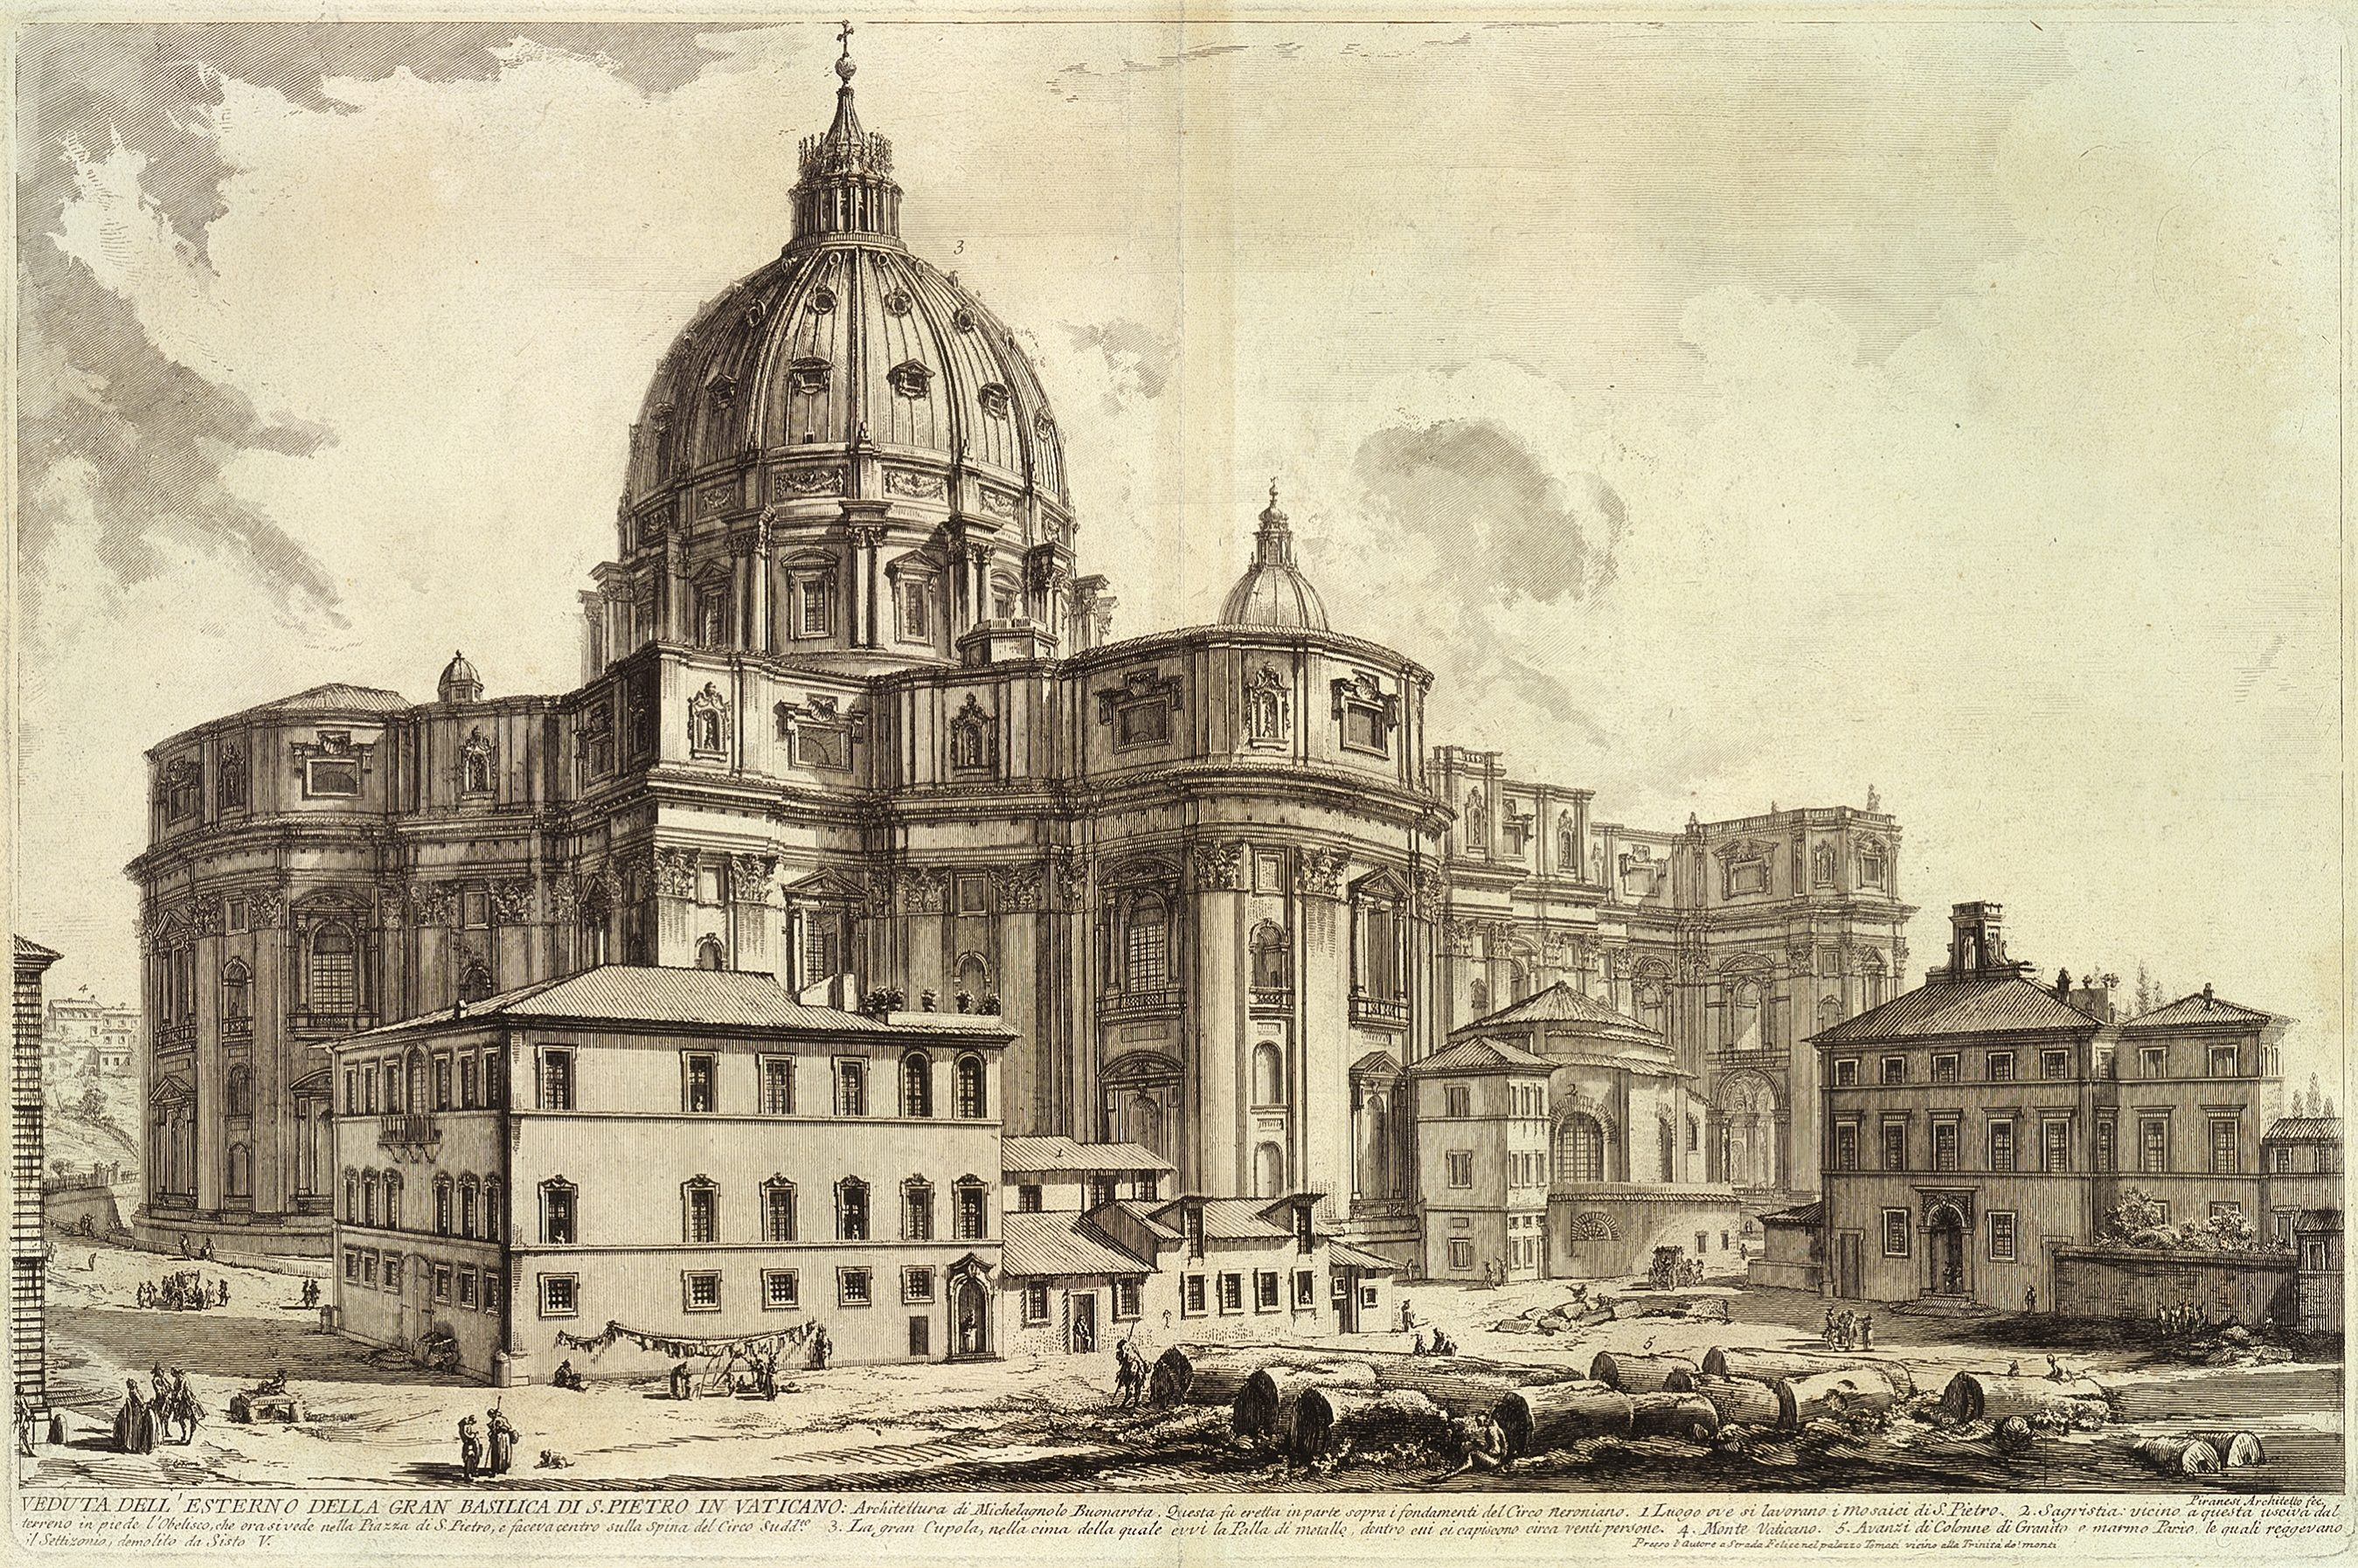 """Photo of """"View of the Exterior of St. Peter's Basilica in the Vatican"""" by Giovanni Battista Piranesi, image shows an etching featuring St. Pete's Basilica with groups of figures around the massive building going about daily life"""